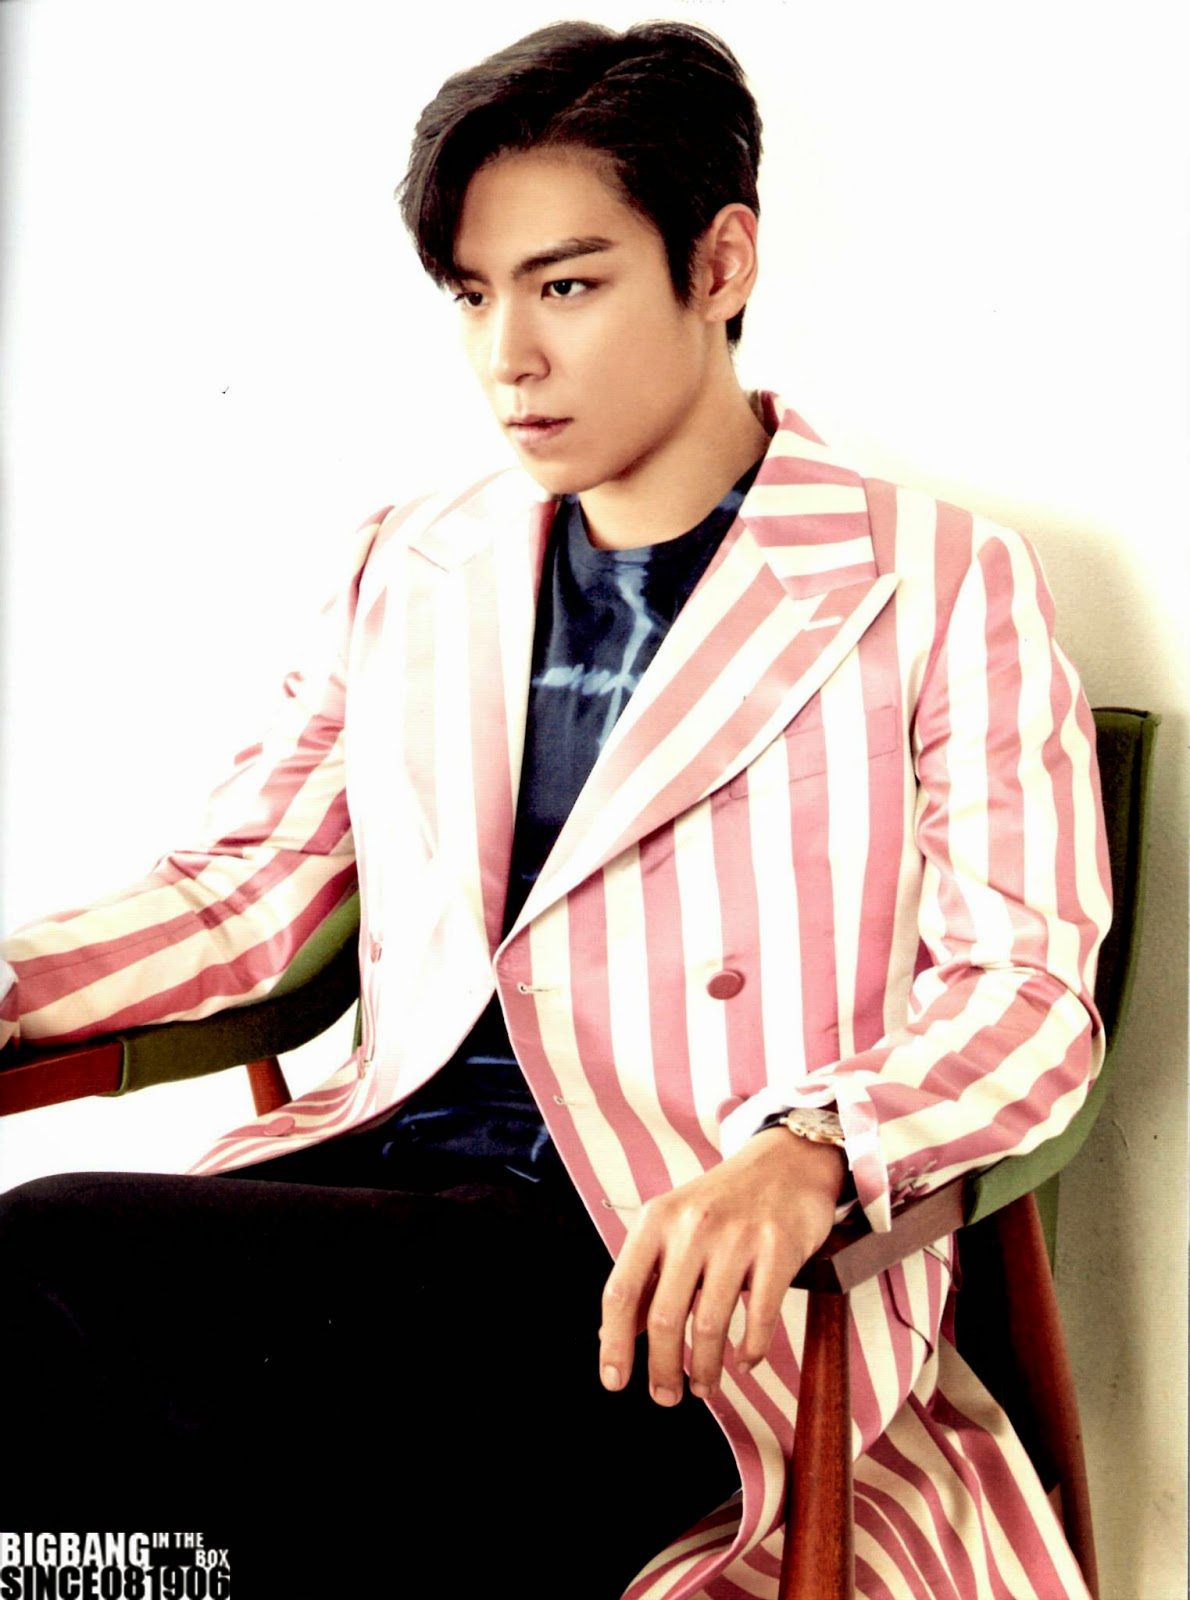 Scans: Big Bang's 2015 Welcoming Collection [PHOTOS]  Scans: Big Bang's 2015 Welcoming Collection [PHOTOS]  Scans: Big Bang's 2015 Welcoming Collection [PHOTOS]  Scans: Big Bang's 2015 Welcoming Collection [PHOTOS]  Scans: Big Bang's 2015 Welcoming Collection [PHOTOS]  Scans: Big Bang's 2015 Welcoming Collection [PHOTOS]  Scans: Big Bang's 2015 Welcoming Collection [PHOTOS]  Scans: Big Bang's 2015 Welcoming Collection [PHOTOS]  Scans: Big Bang's 2015 Welcoming Collection [PHOTOS]  Scans: Big Bang's 2015 Welcoming Collection [PHOTOS]  Scans: Big Bang's 2015 Welcoming Collection [PHOTOS]  Scans: Big Bang's 2015 Welcoming Collection [PHOTOS]  Scans: Big Bang's 2015 Welcoming Collection [PHOTOS]  Scans: Big Bang's 2015 Welcoming Collection [PHOTOS]  Scans: Big Bang's 2015 Welcoming Collection [PHOTOS]  Scans: Big Bang's 2015 Welcoming Collection [PHOTOS]  Scans: Big Bang's 2015 Welcoming Collection [PHOTOS]  Scans: Big Bang's 2015 Welcoming Collection [PHOTOS]  Scans: Big Bang's 2015 Welcoming Collection [PHOTOS]  Scans: Big Bang's 2015 Welcoming Collection [PHOTOS]  Scans: Big Bang's 2015 Welcoming Collection [PHOTOS]  Scans: Big Bang's 2015 Welcoming Collection [PHOTOS]  Scans: Big Bang's 2015 Welcoming Collection [PHOTOS]